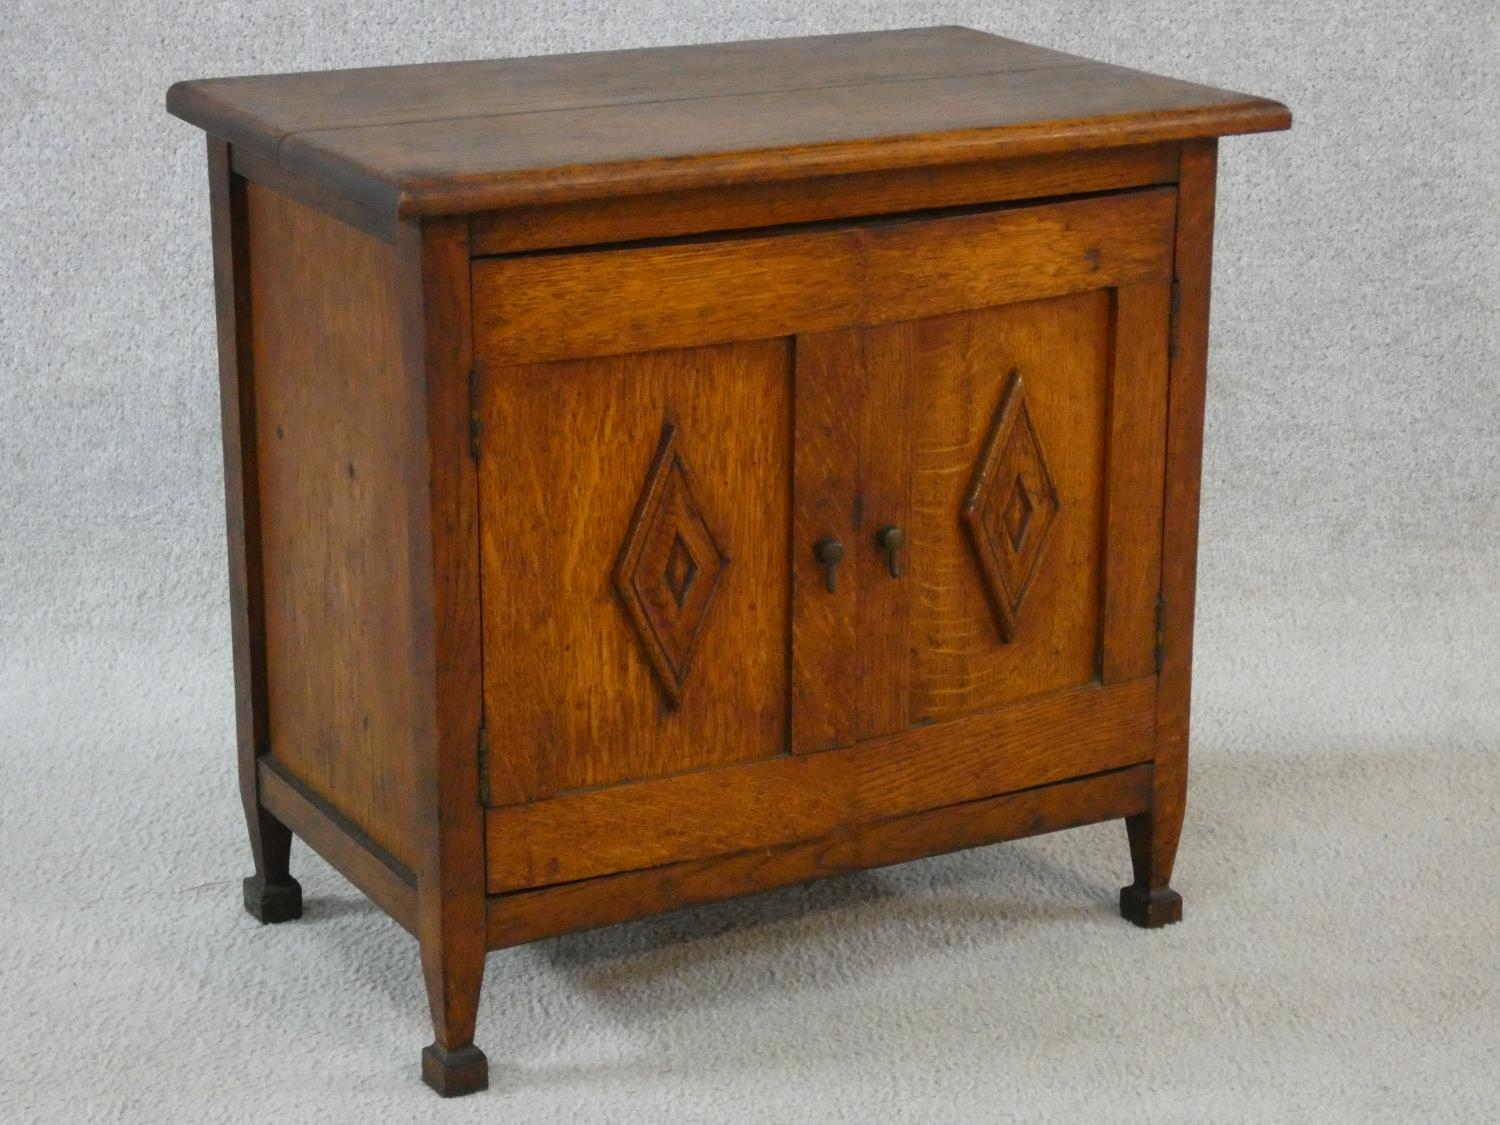 An early 20th century country oak style side cabinet with carved panel doors on squat square - Image 4 of 14